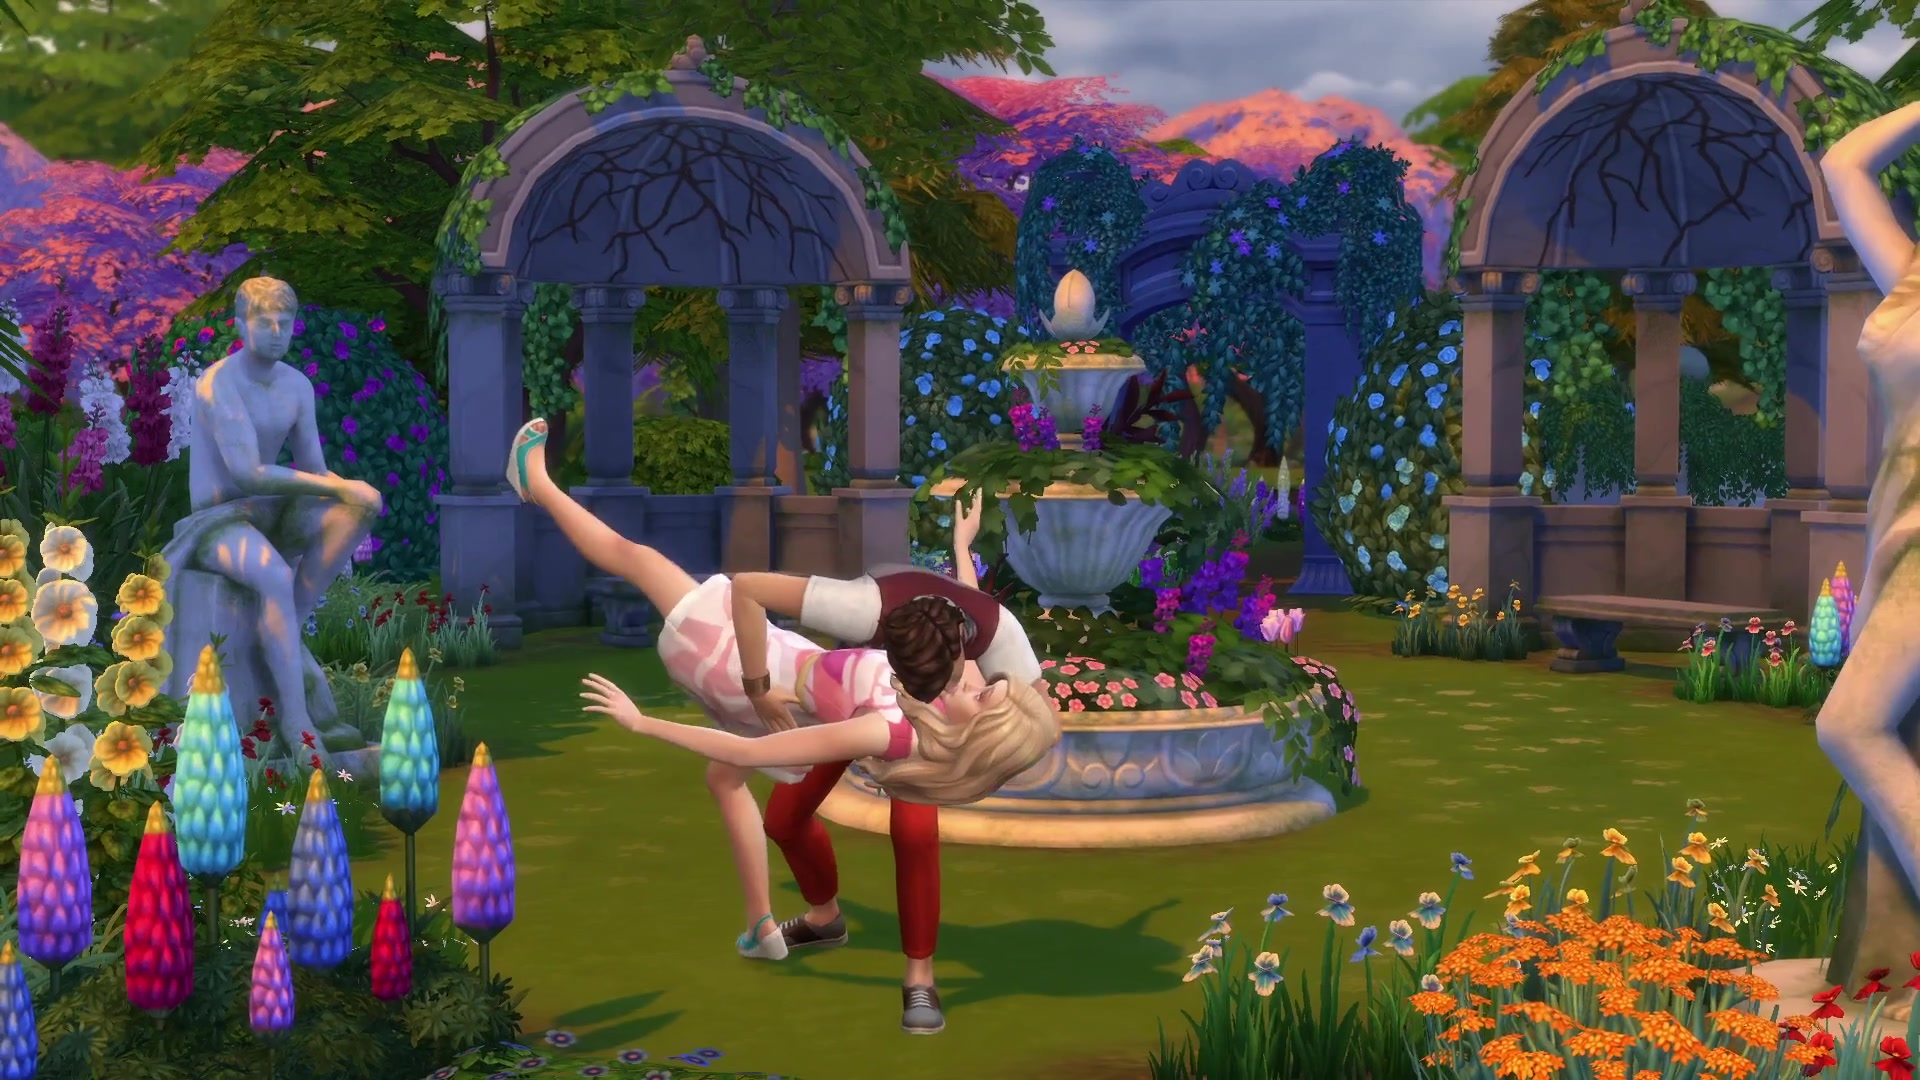 Romantic Garden Stuff! - Page 8 — The Sims Forums